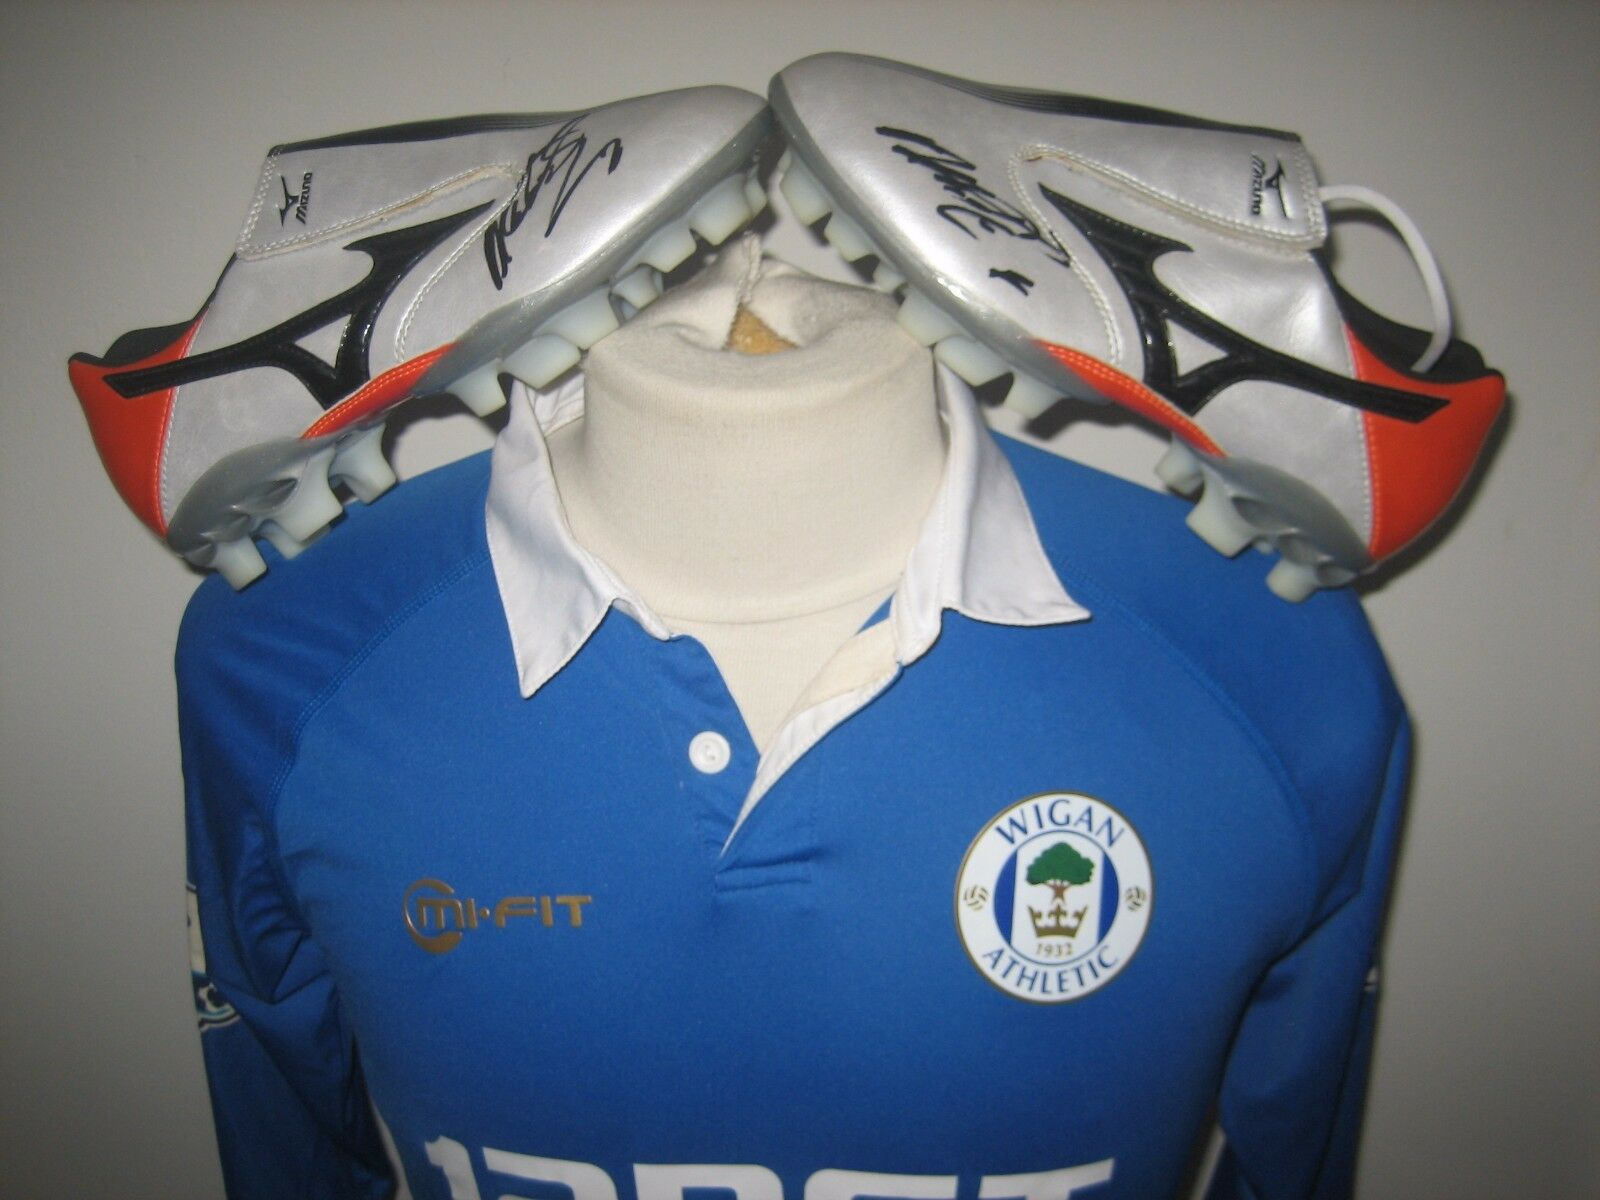 Wigan Athletic MATCH WORN and SIGNED football shirt + BOOTS soccer jersey size S